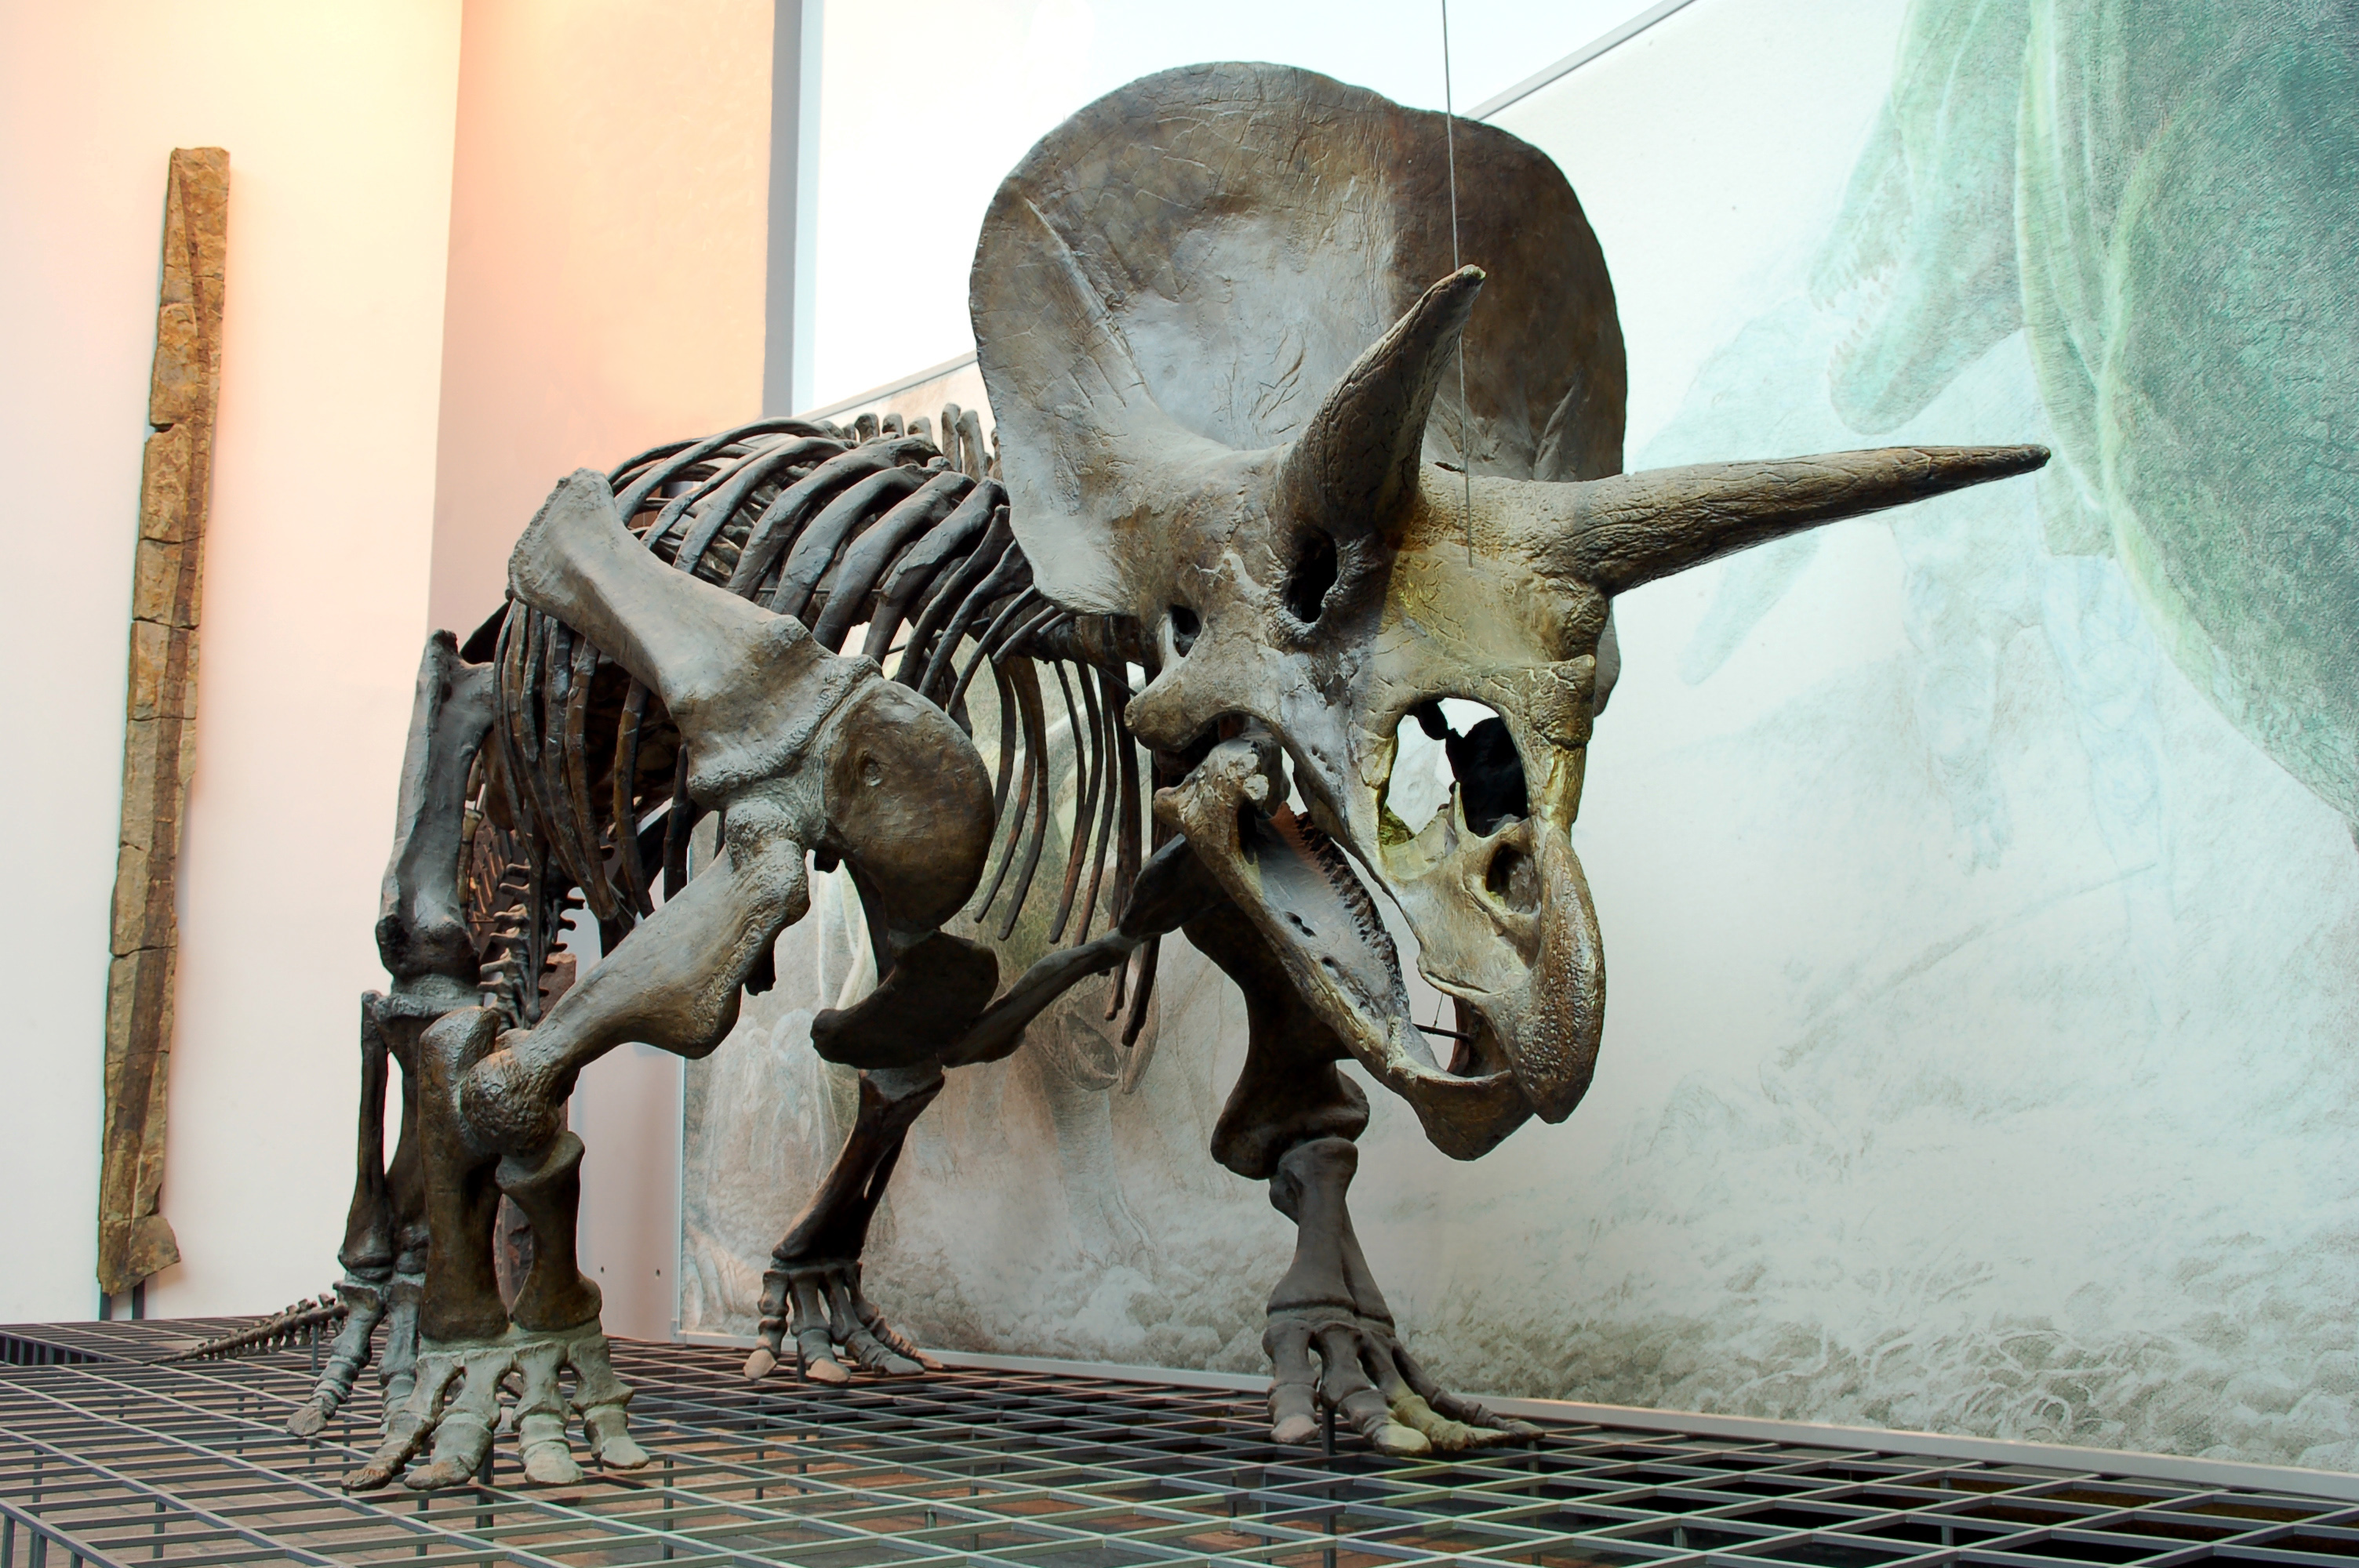 https://upload.wikimedia.org/wikipedia/commons/7/71/Triceratops_Skeleton_Senckenberg.jpg